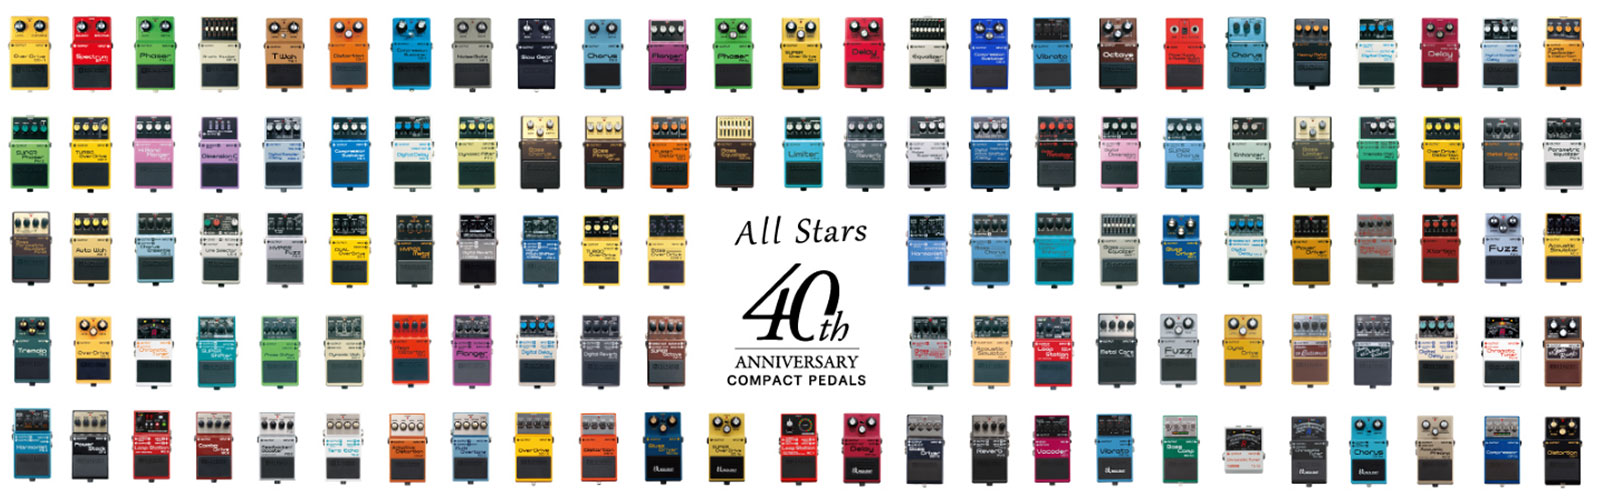 40th Anniversary Compact Pedals